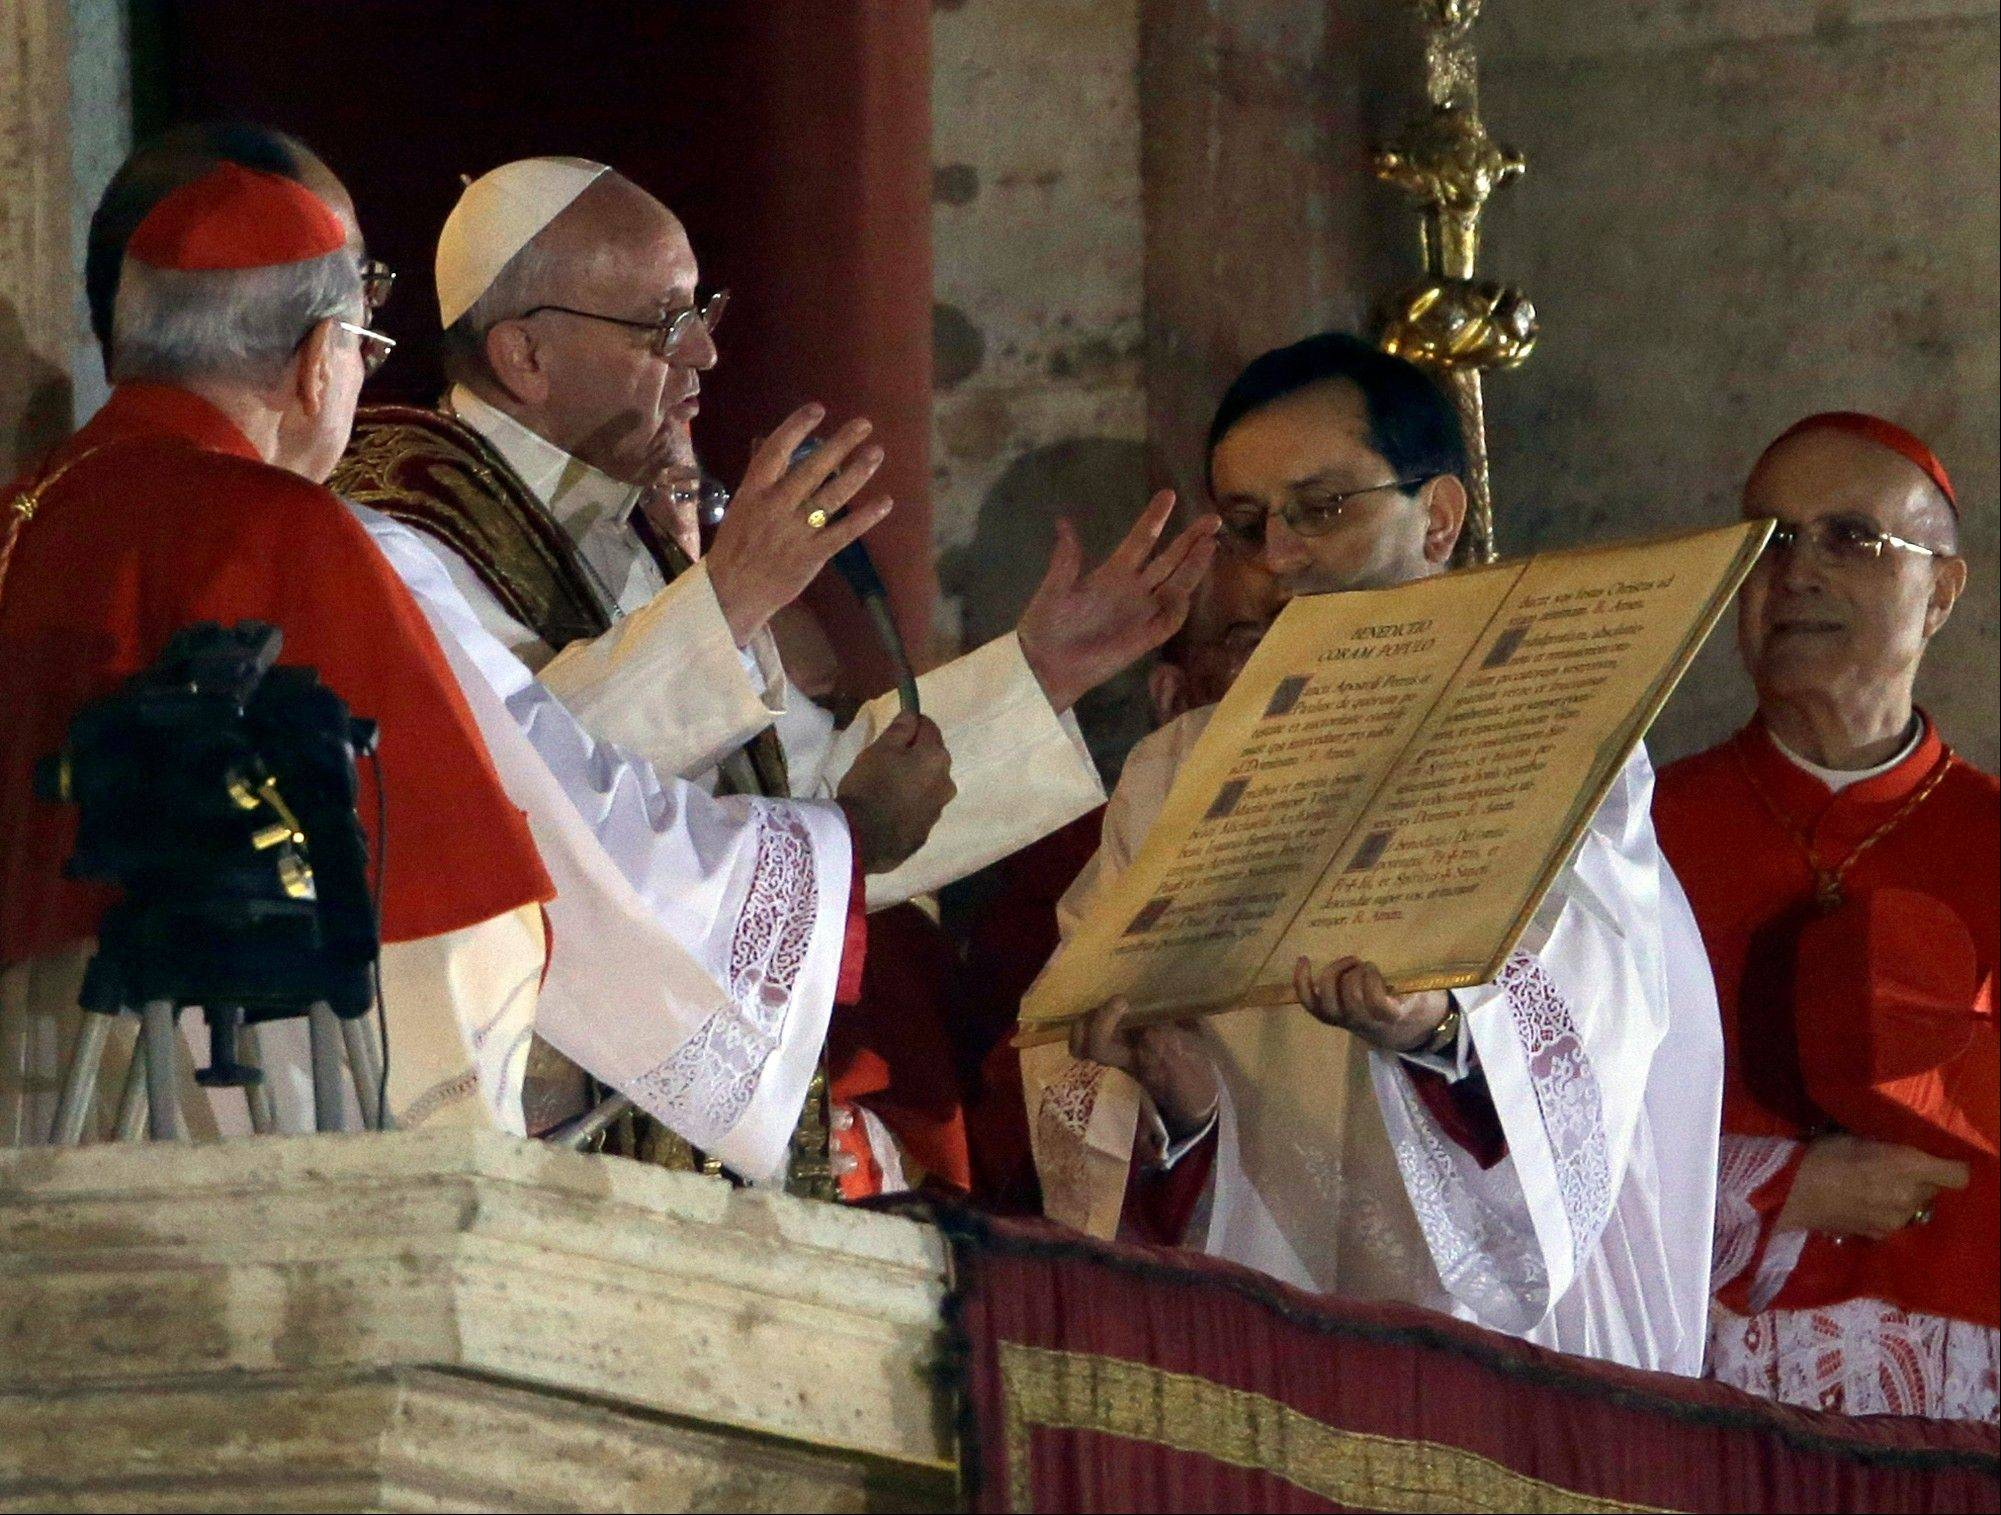 Pope Francis speaks from the central balcony of St. Peter's Basilica at the Vatican, Wednesday, March 13, 2013. Cardinal Jorge Bergoglio who chose the name of Francis, is the 266th pontiff of the Roman Catholic Church.